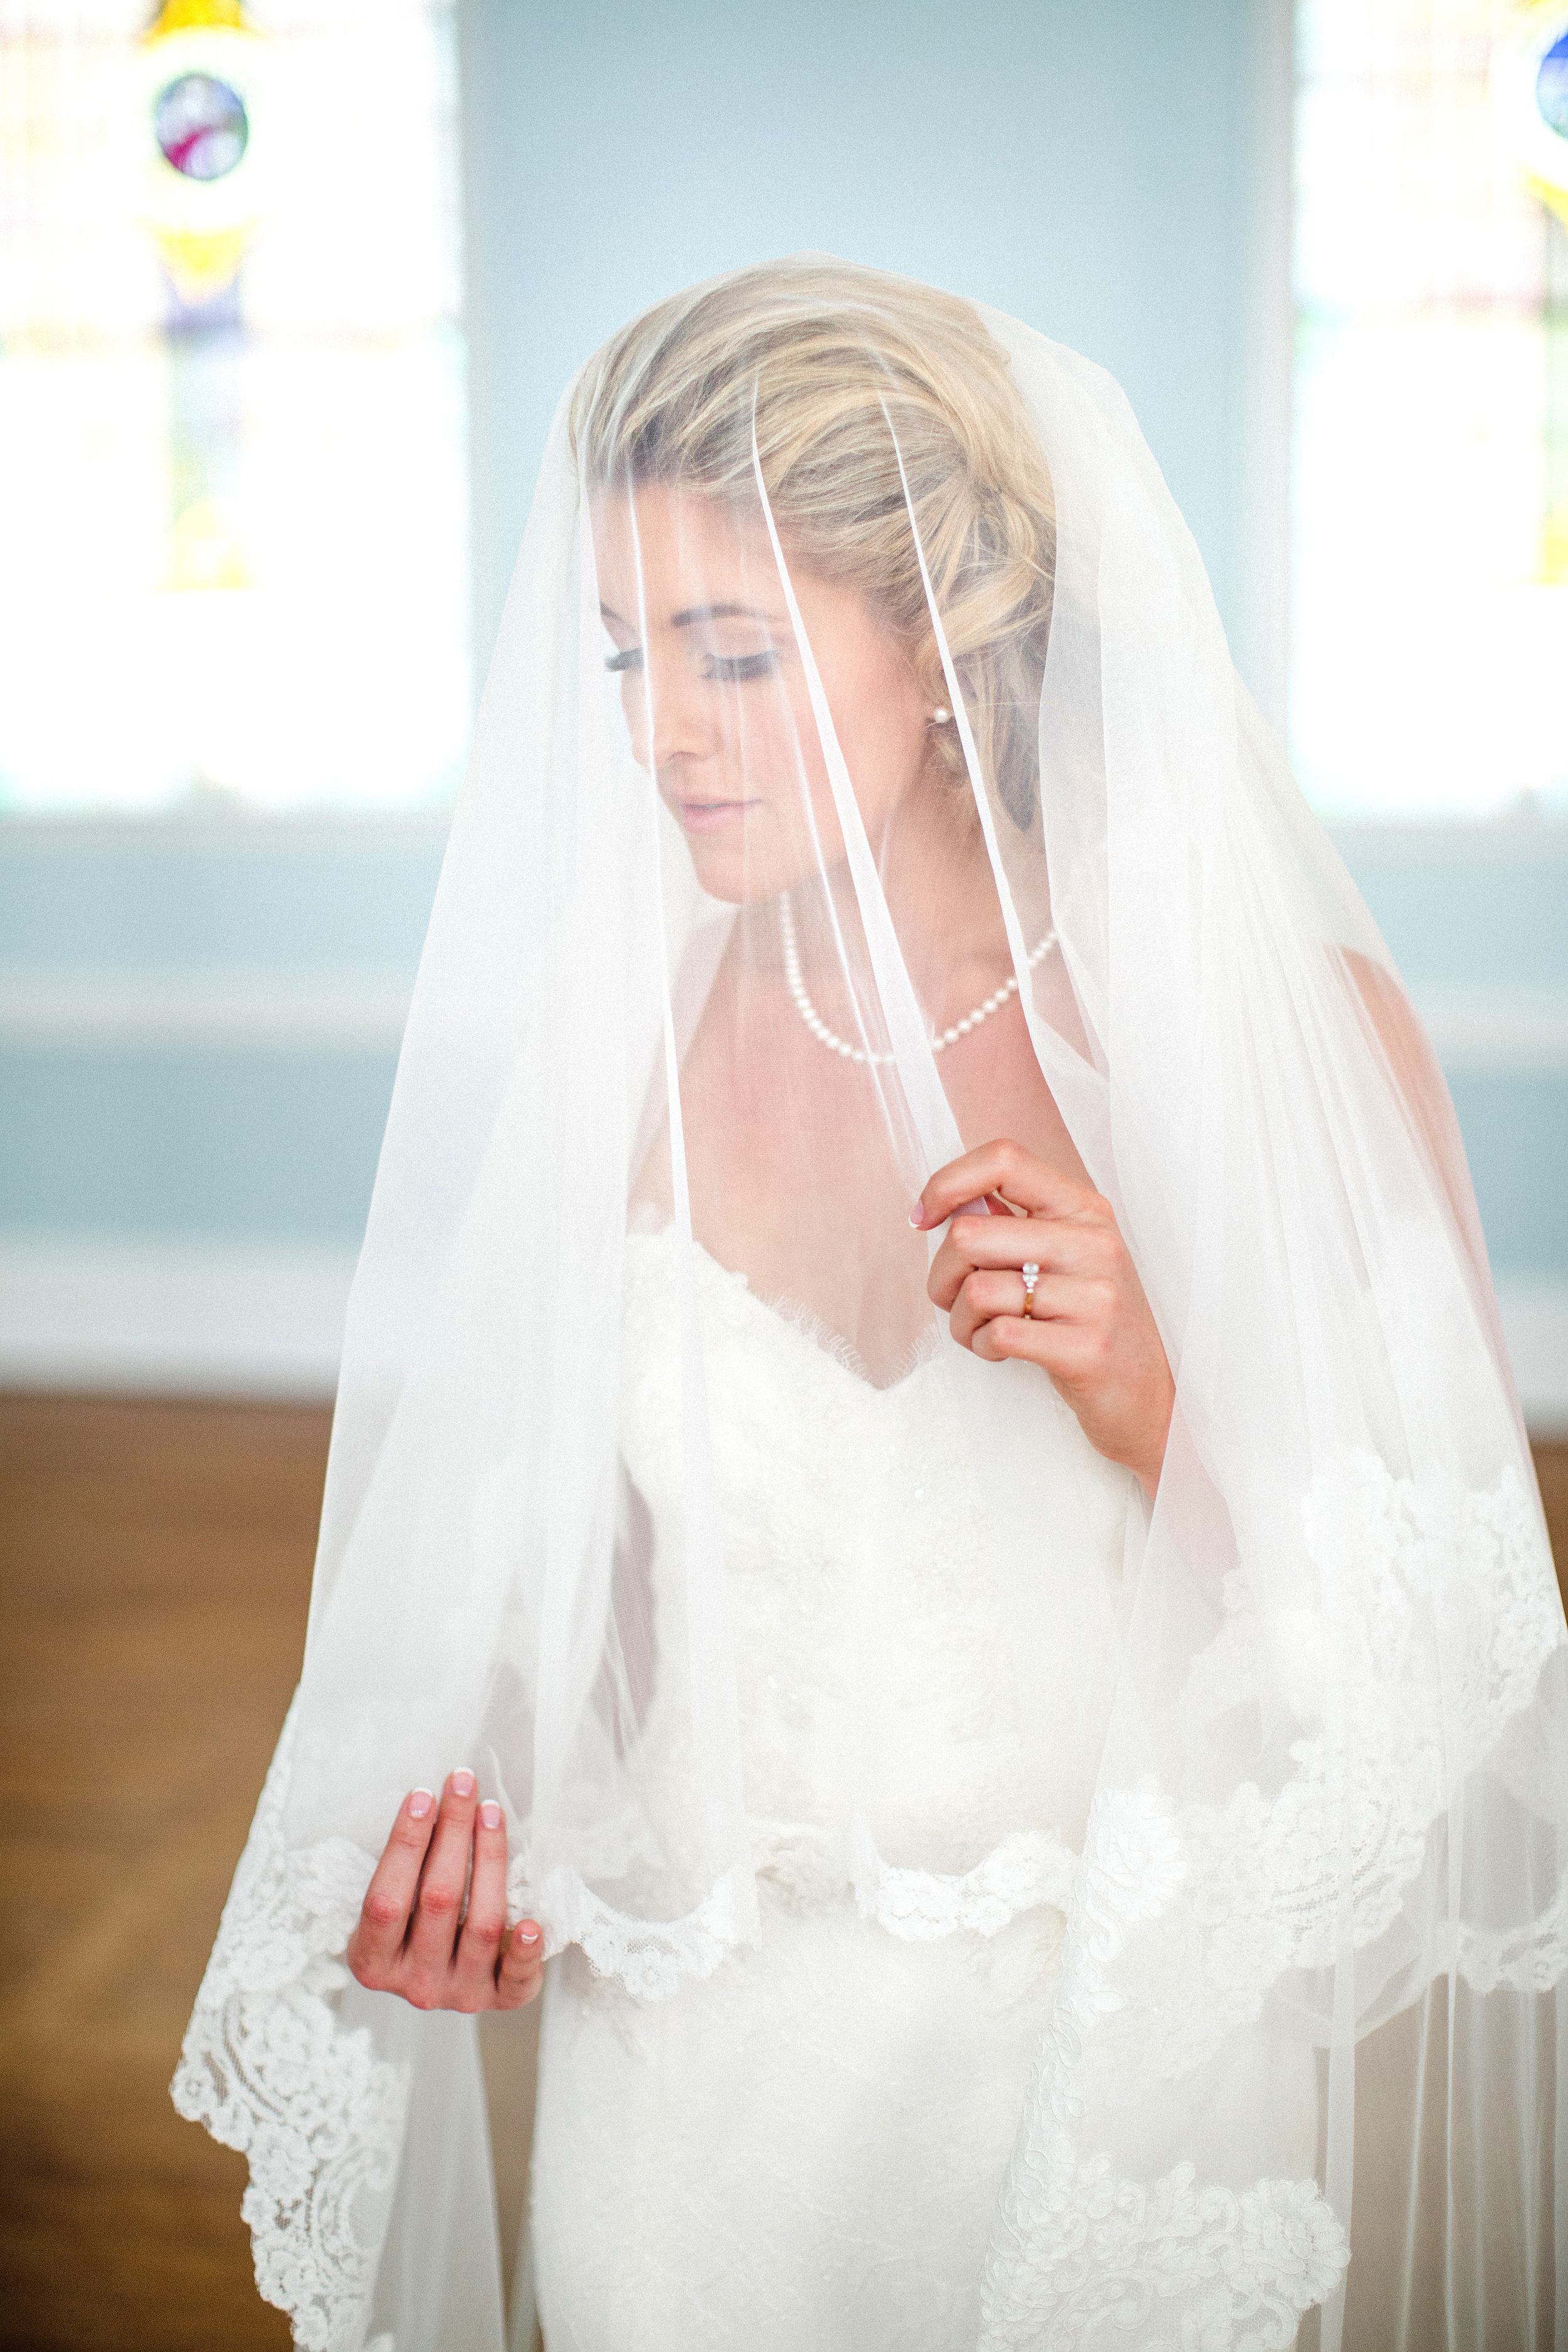 Hillary-and-Brian-izzy-hudgins-photography-anais-anette-tristan-lace-mermaid-wedding-dress-ivory-and-beau-bridal-boutique-savannah-bridal-boutique-savannah-wedding-dresses-savannah-bridal-gowns-savannah-wedding-dresses-first-babtist-savannah-16.jpg